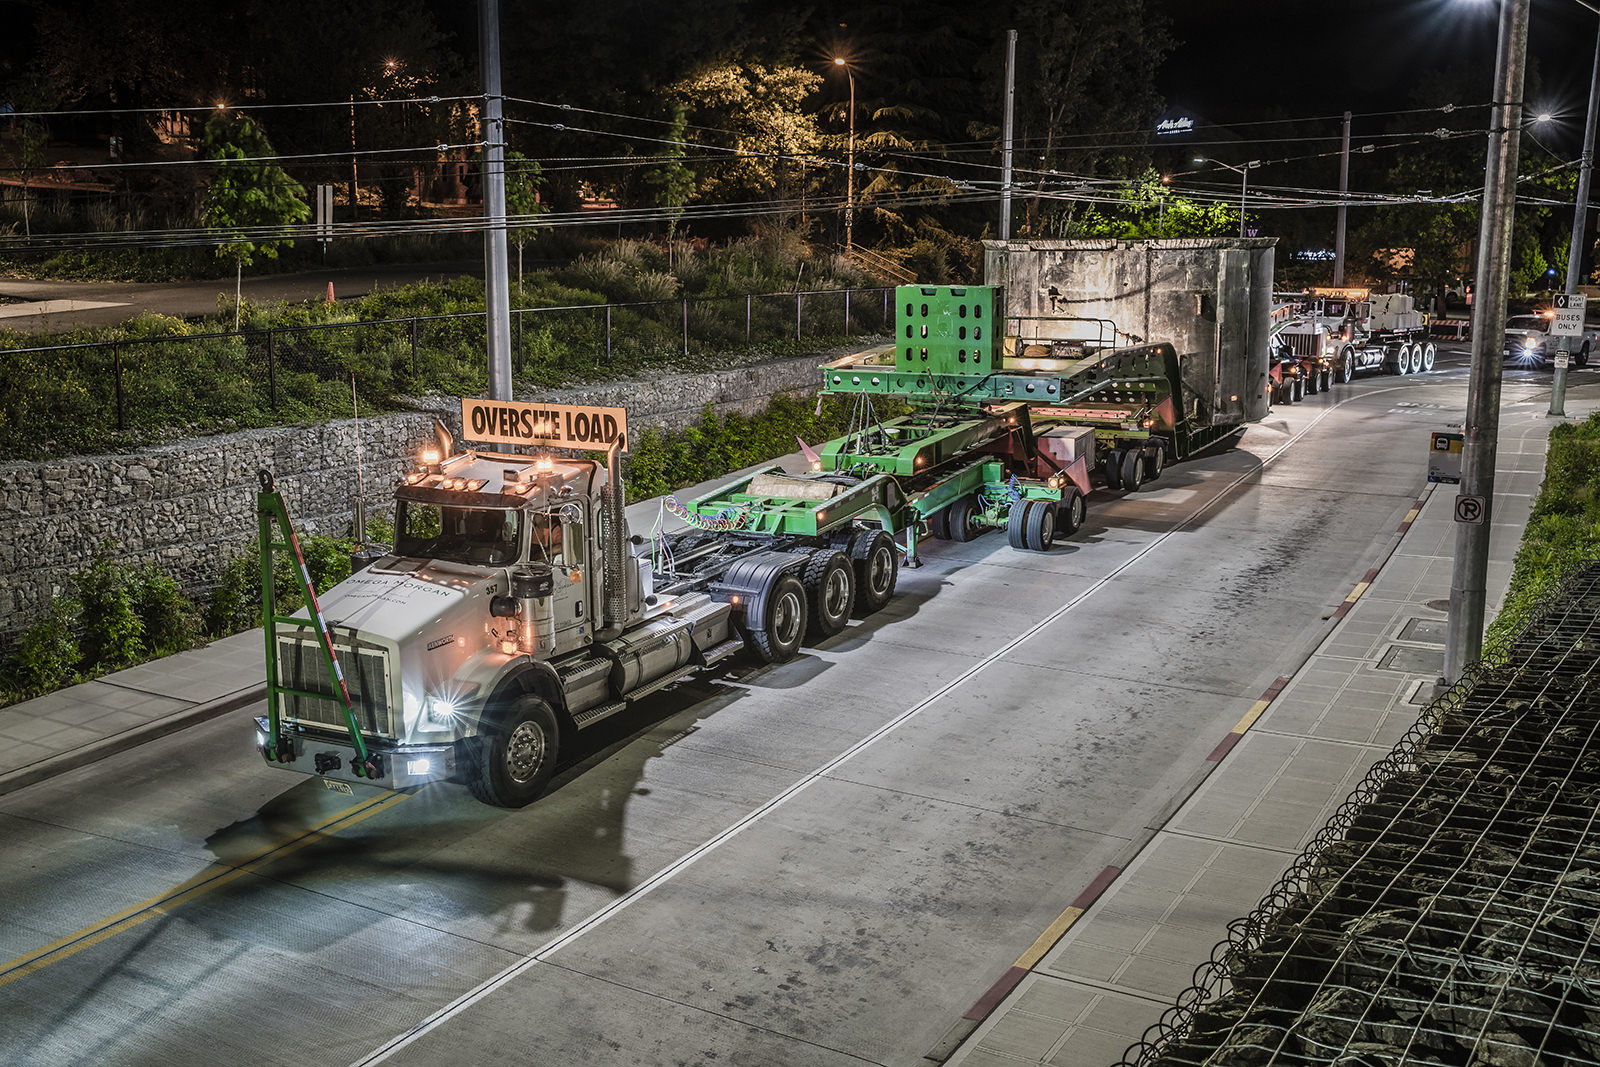 Transporting 220,000lb TBM section on city streets